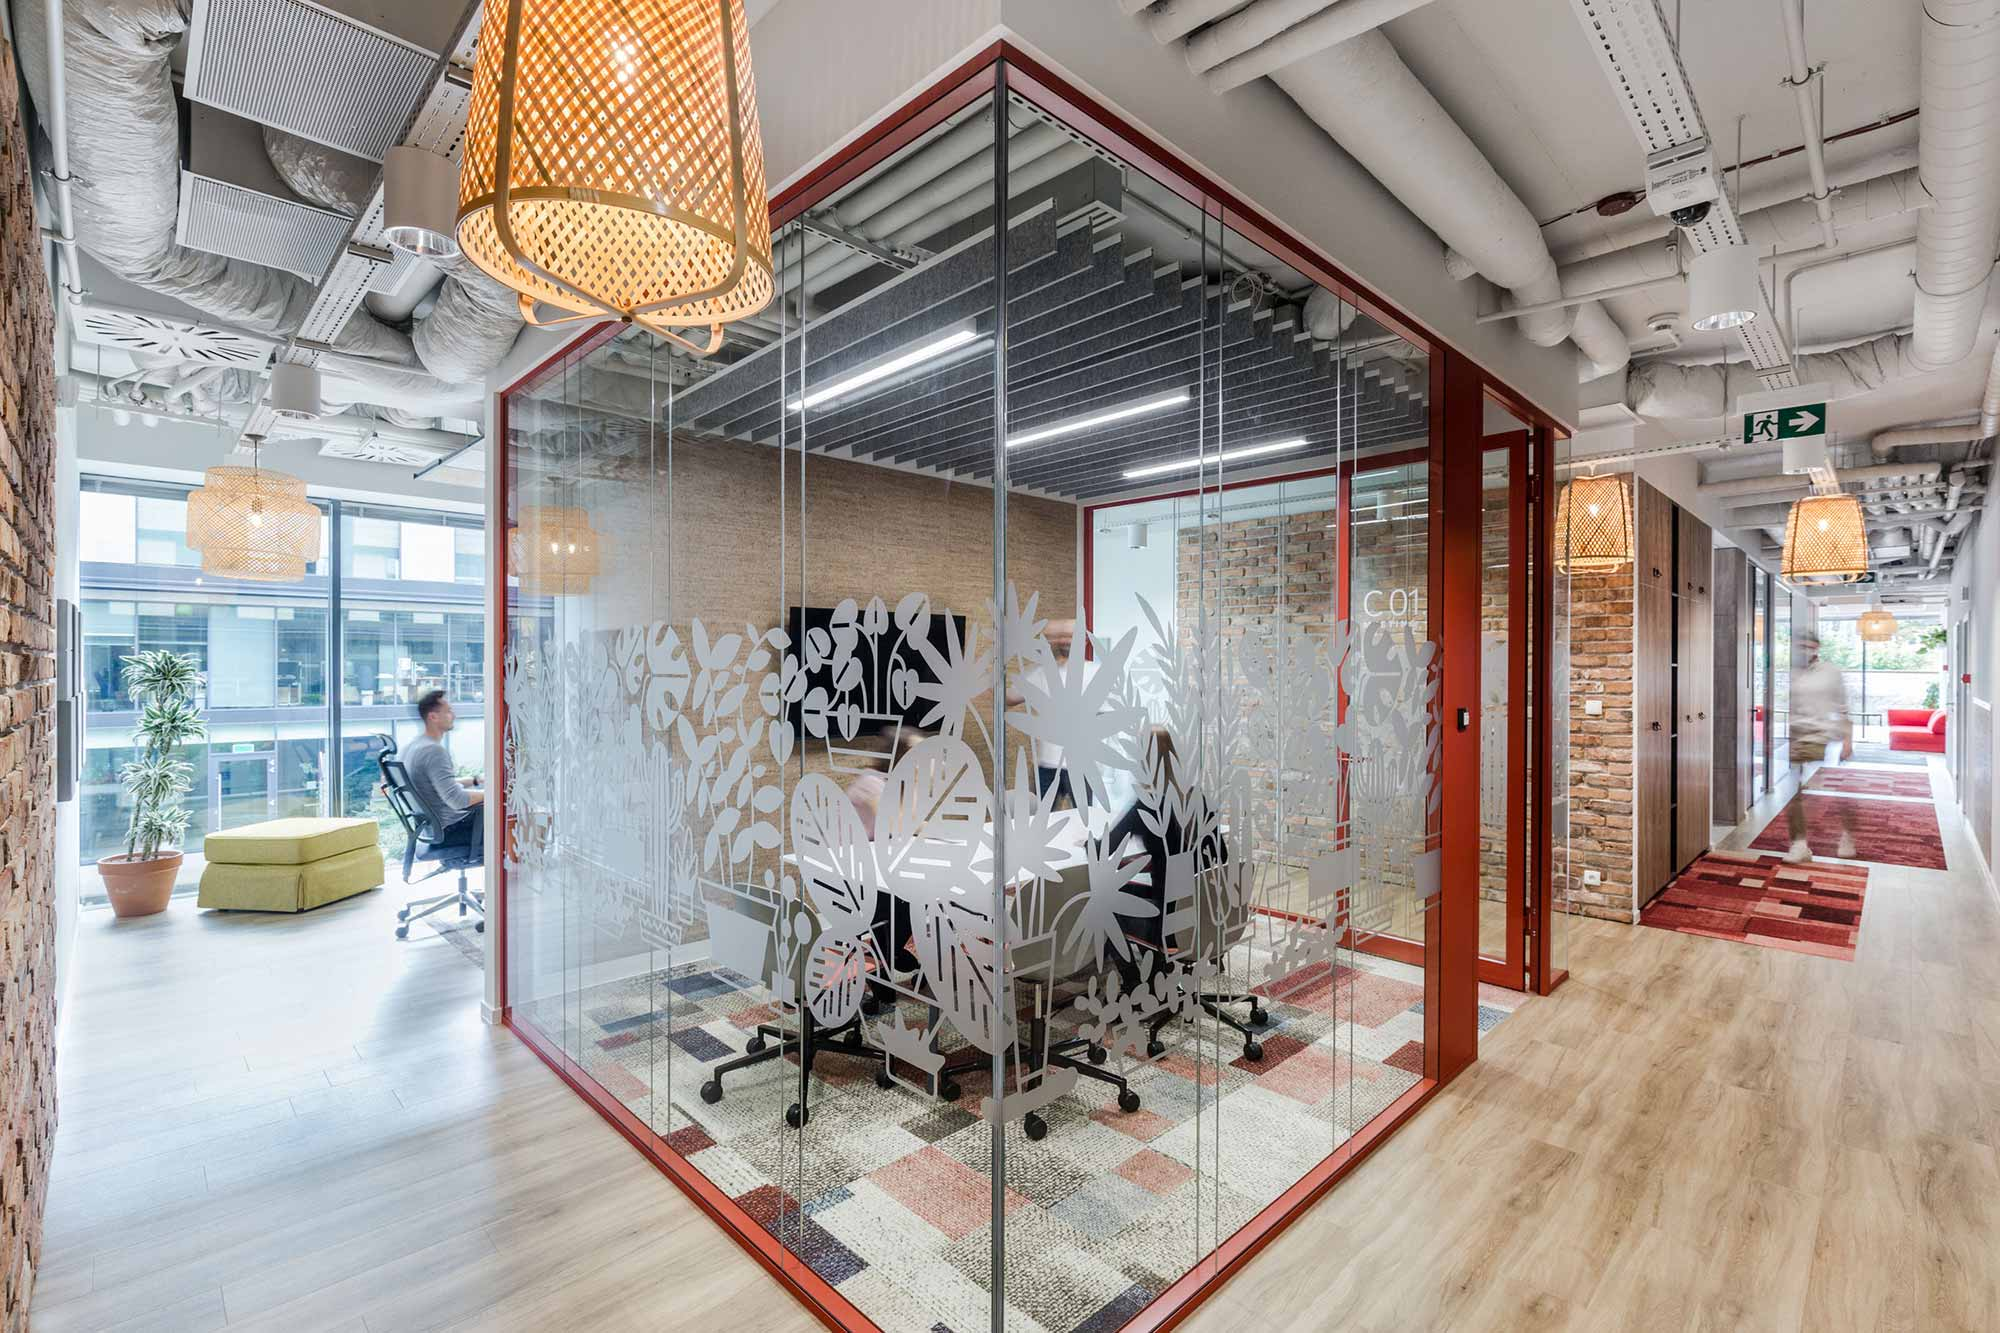 glass walled meeting room at Nordea Less Waste Office in Poland